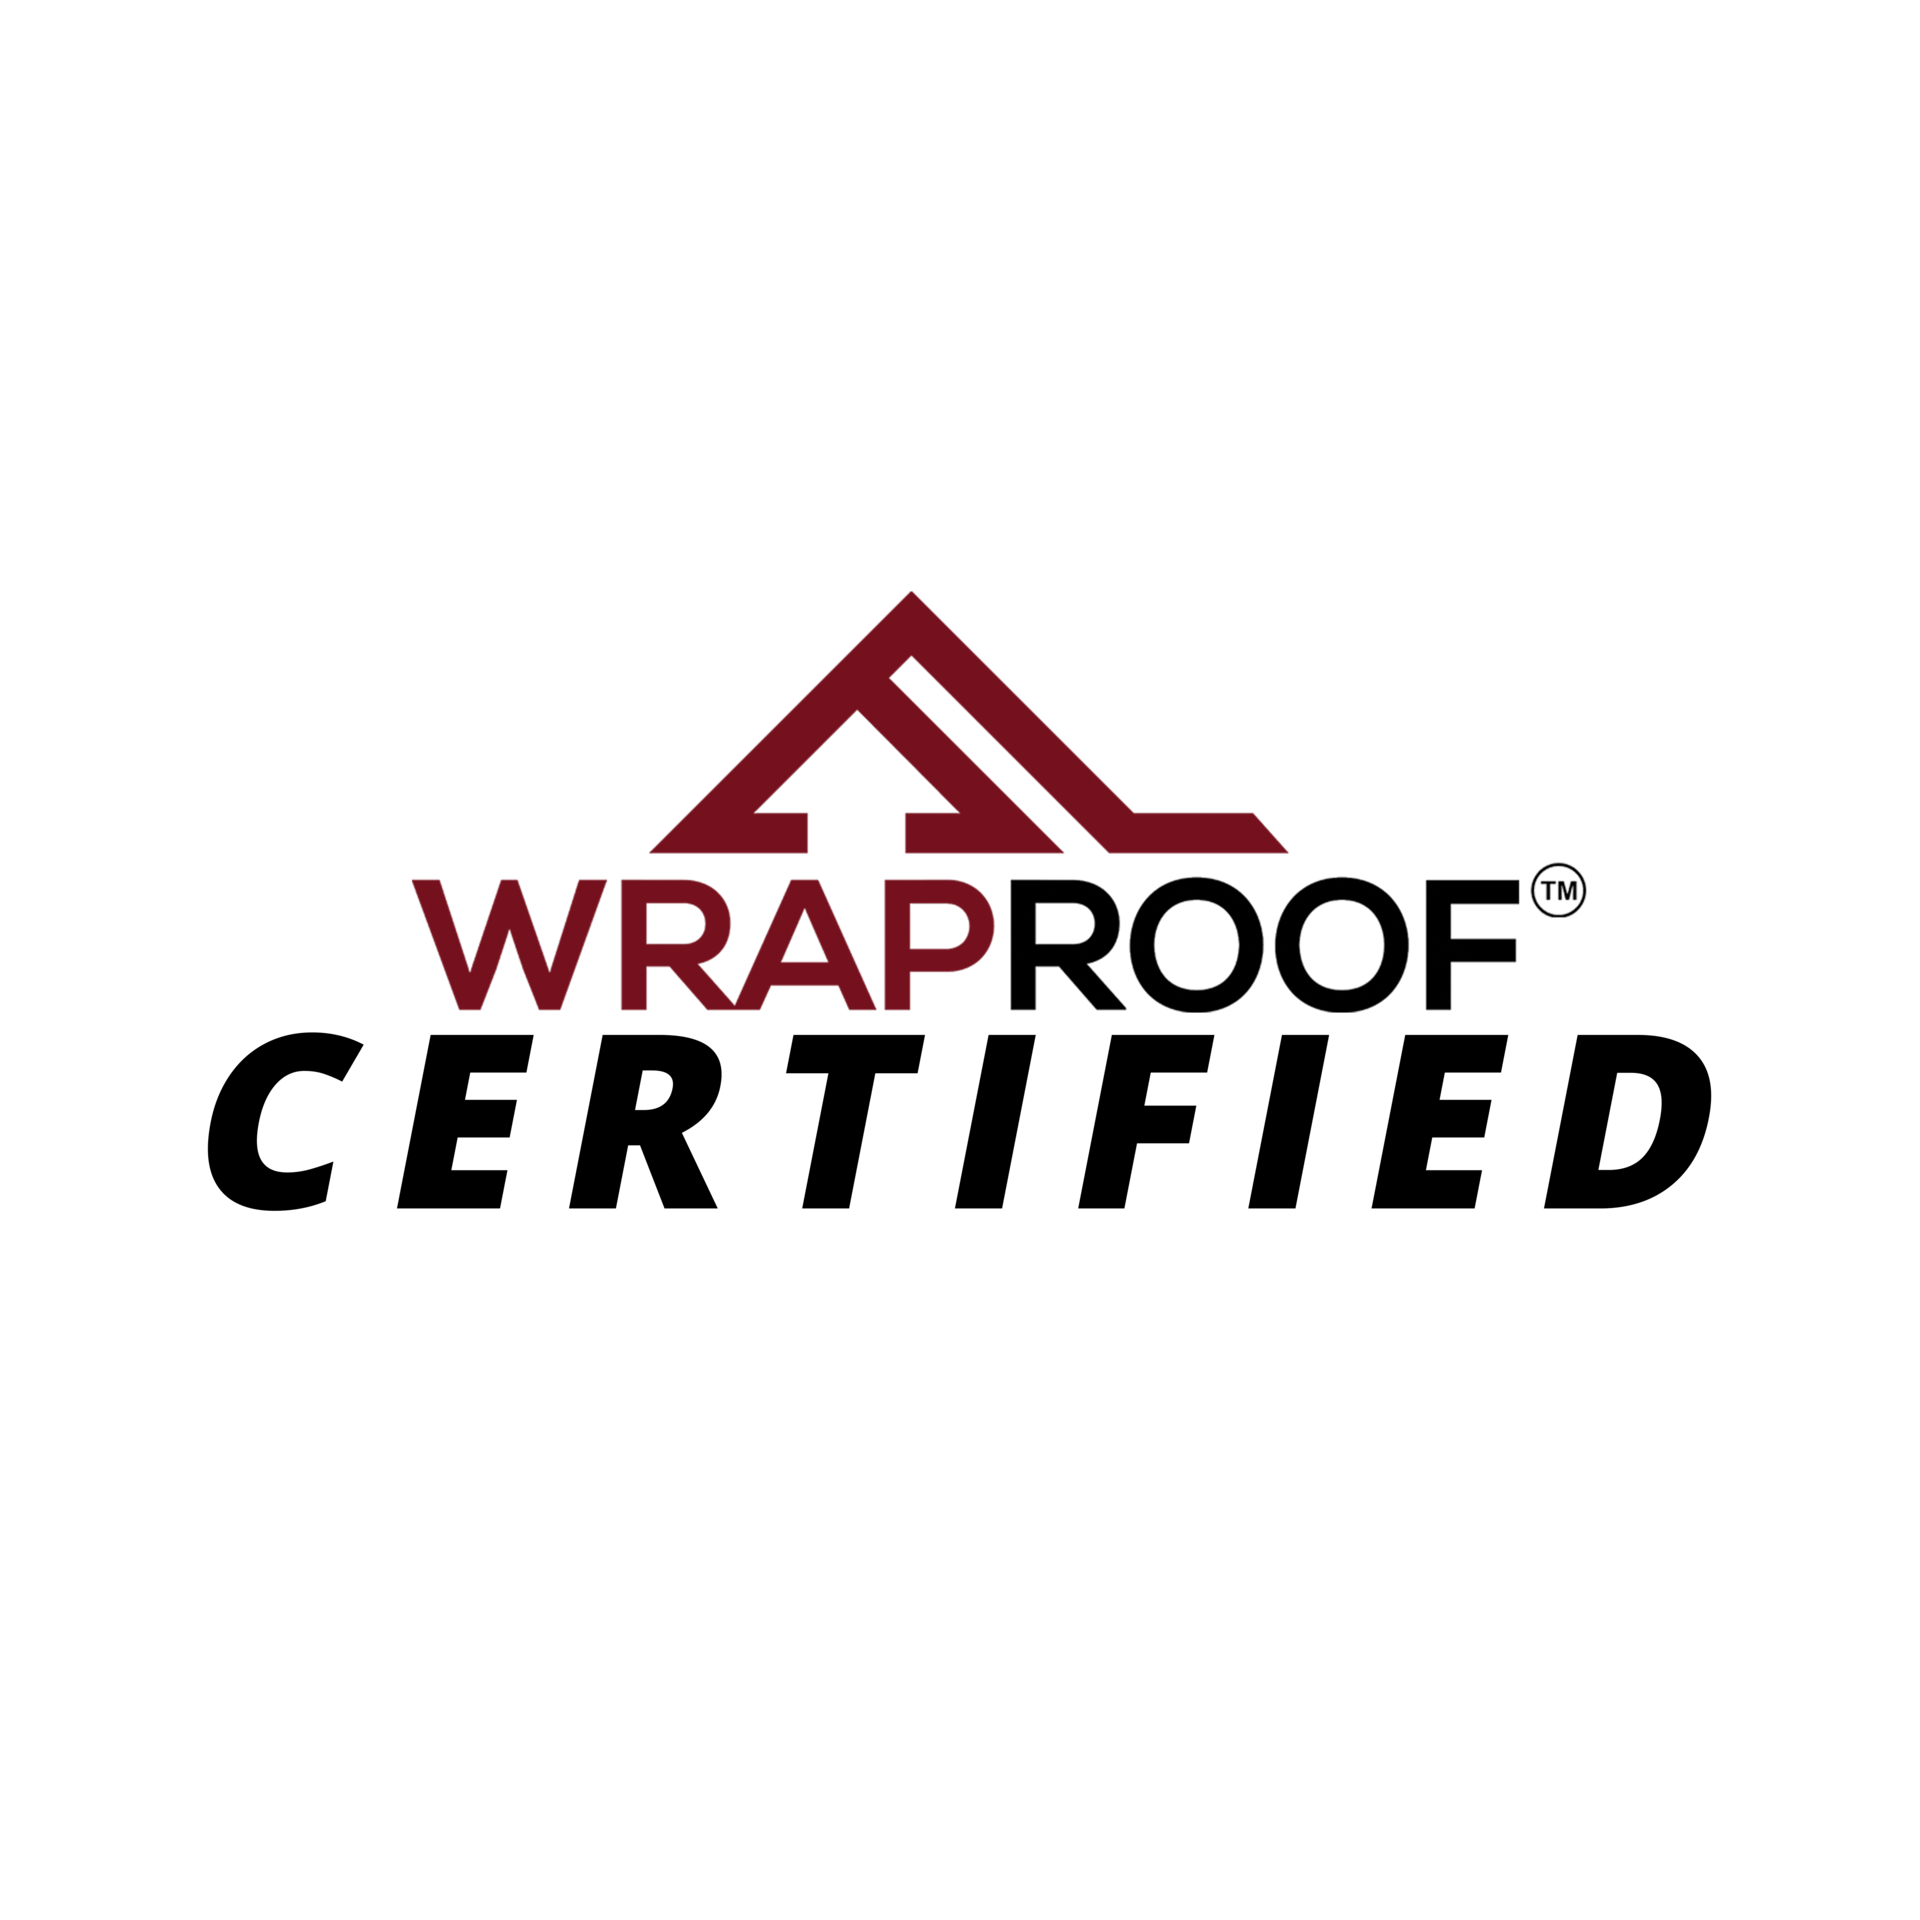 wraproof certified png logo